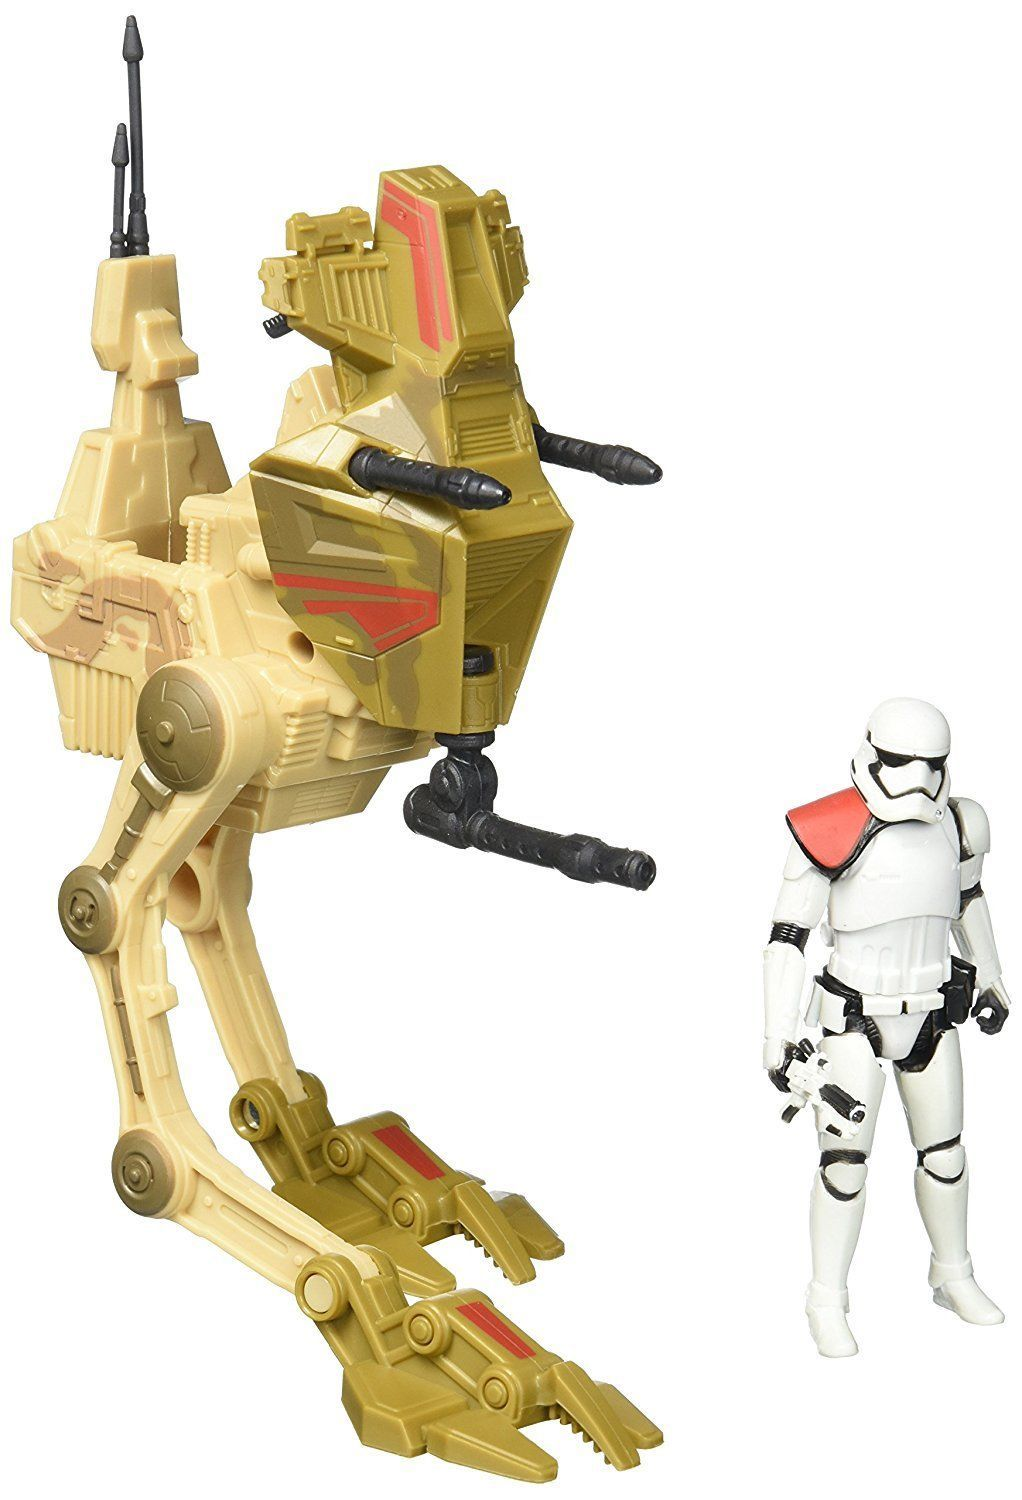 Image 0 of Star Wars Desert Assault Walker with Figure - EE Exclusive 2015, Hasbro 4+